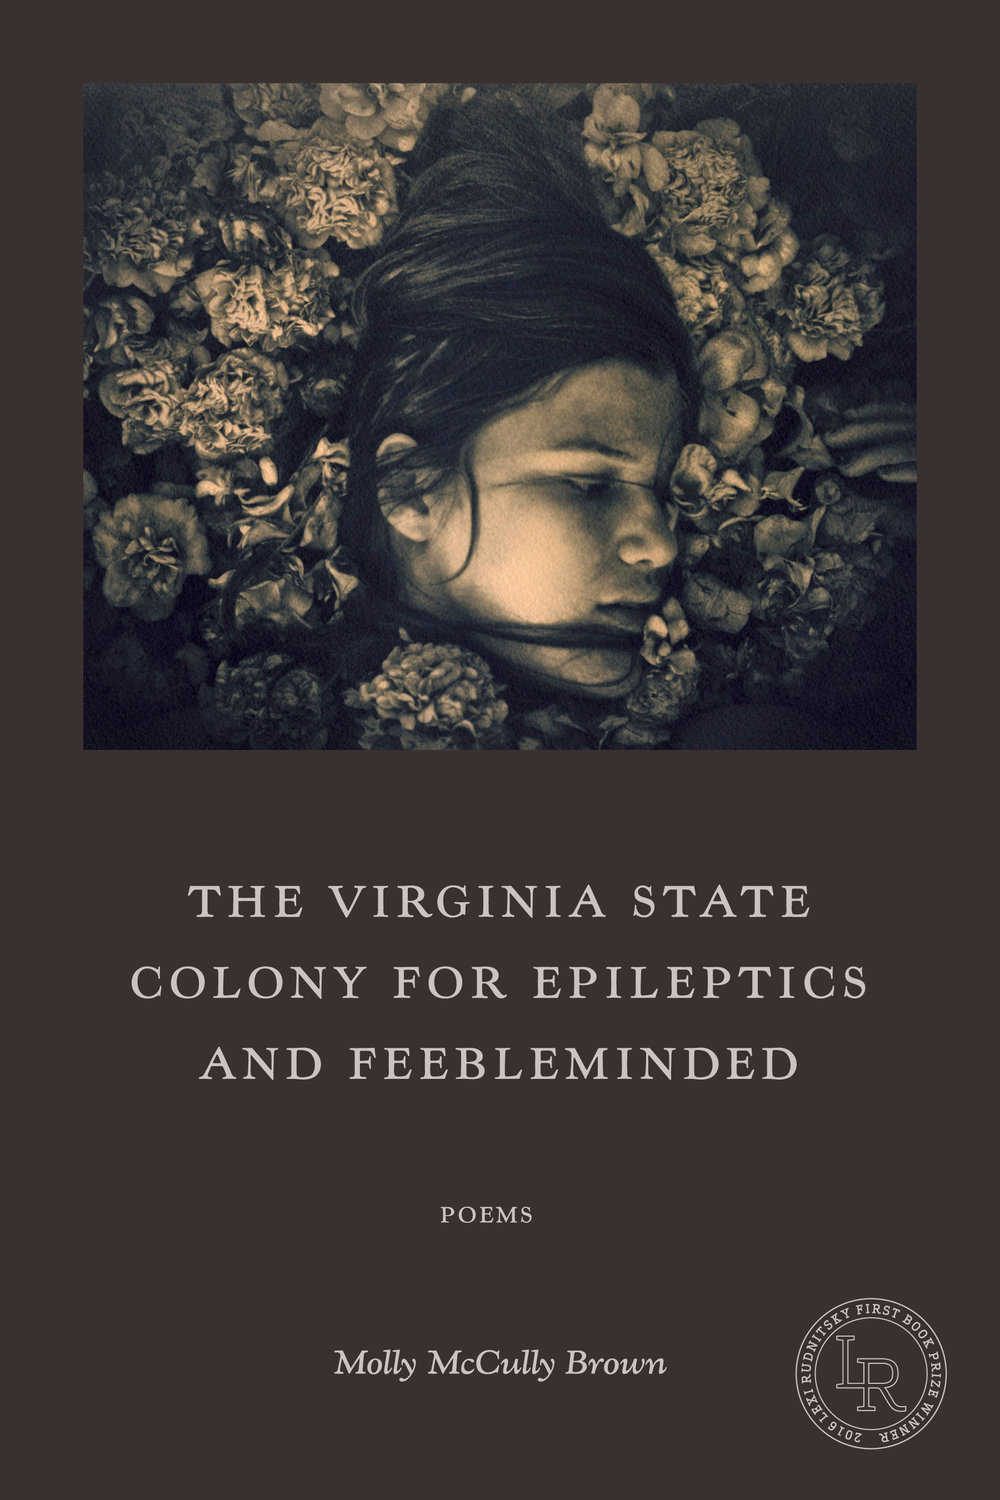 The Virginia State Colony for Epilepctics and Feebleminded